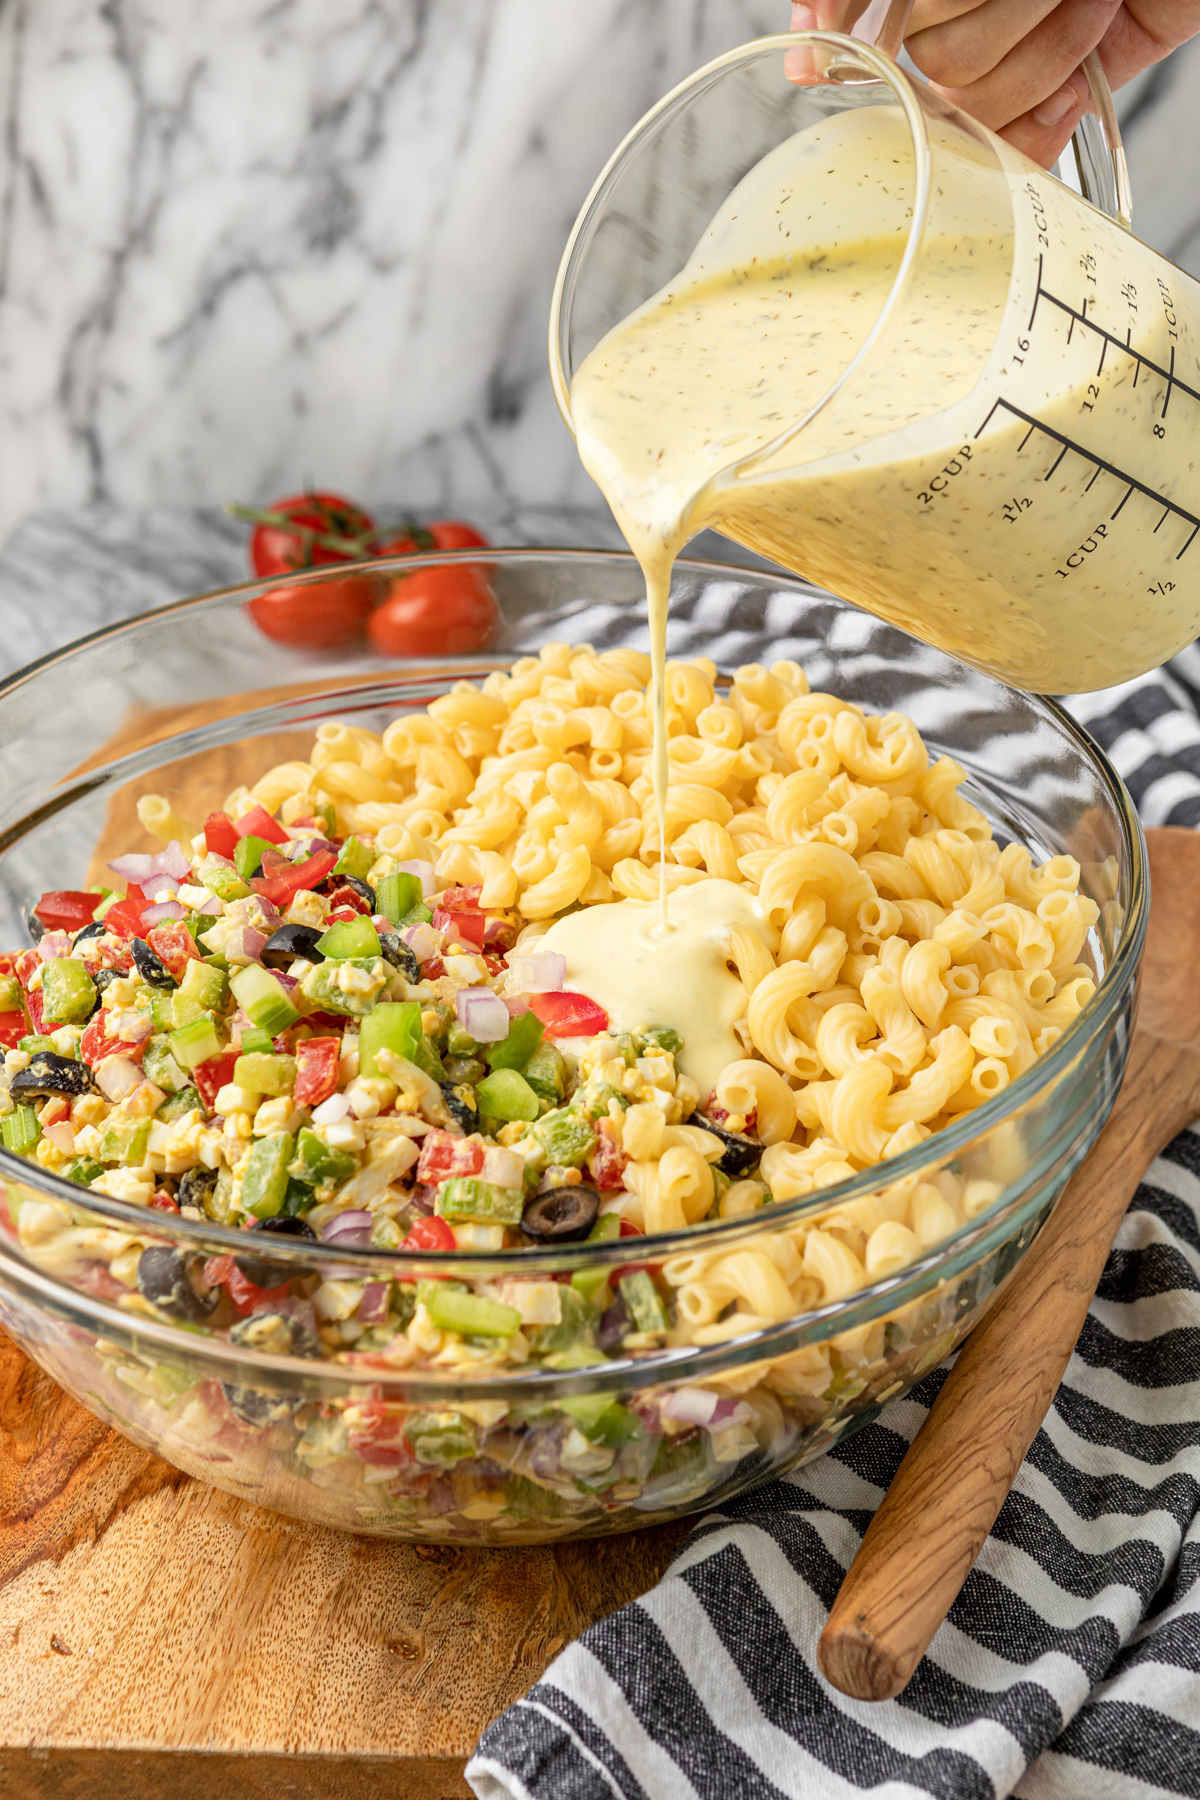 how to make macaroni salad pouring macaroni salad dressing over ingredients in a glass bowl